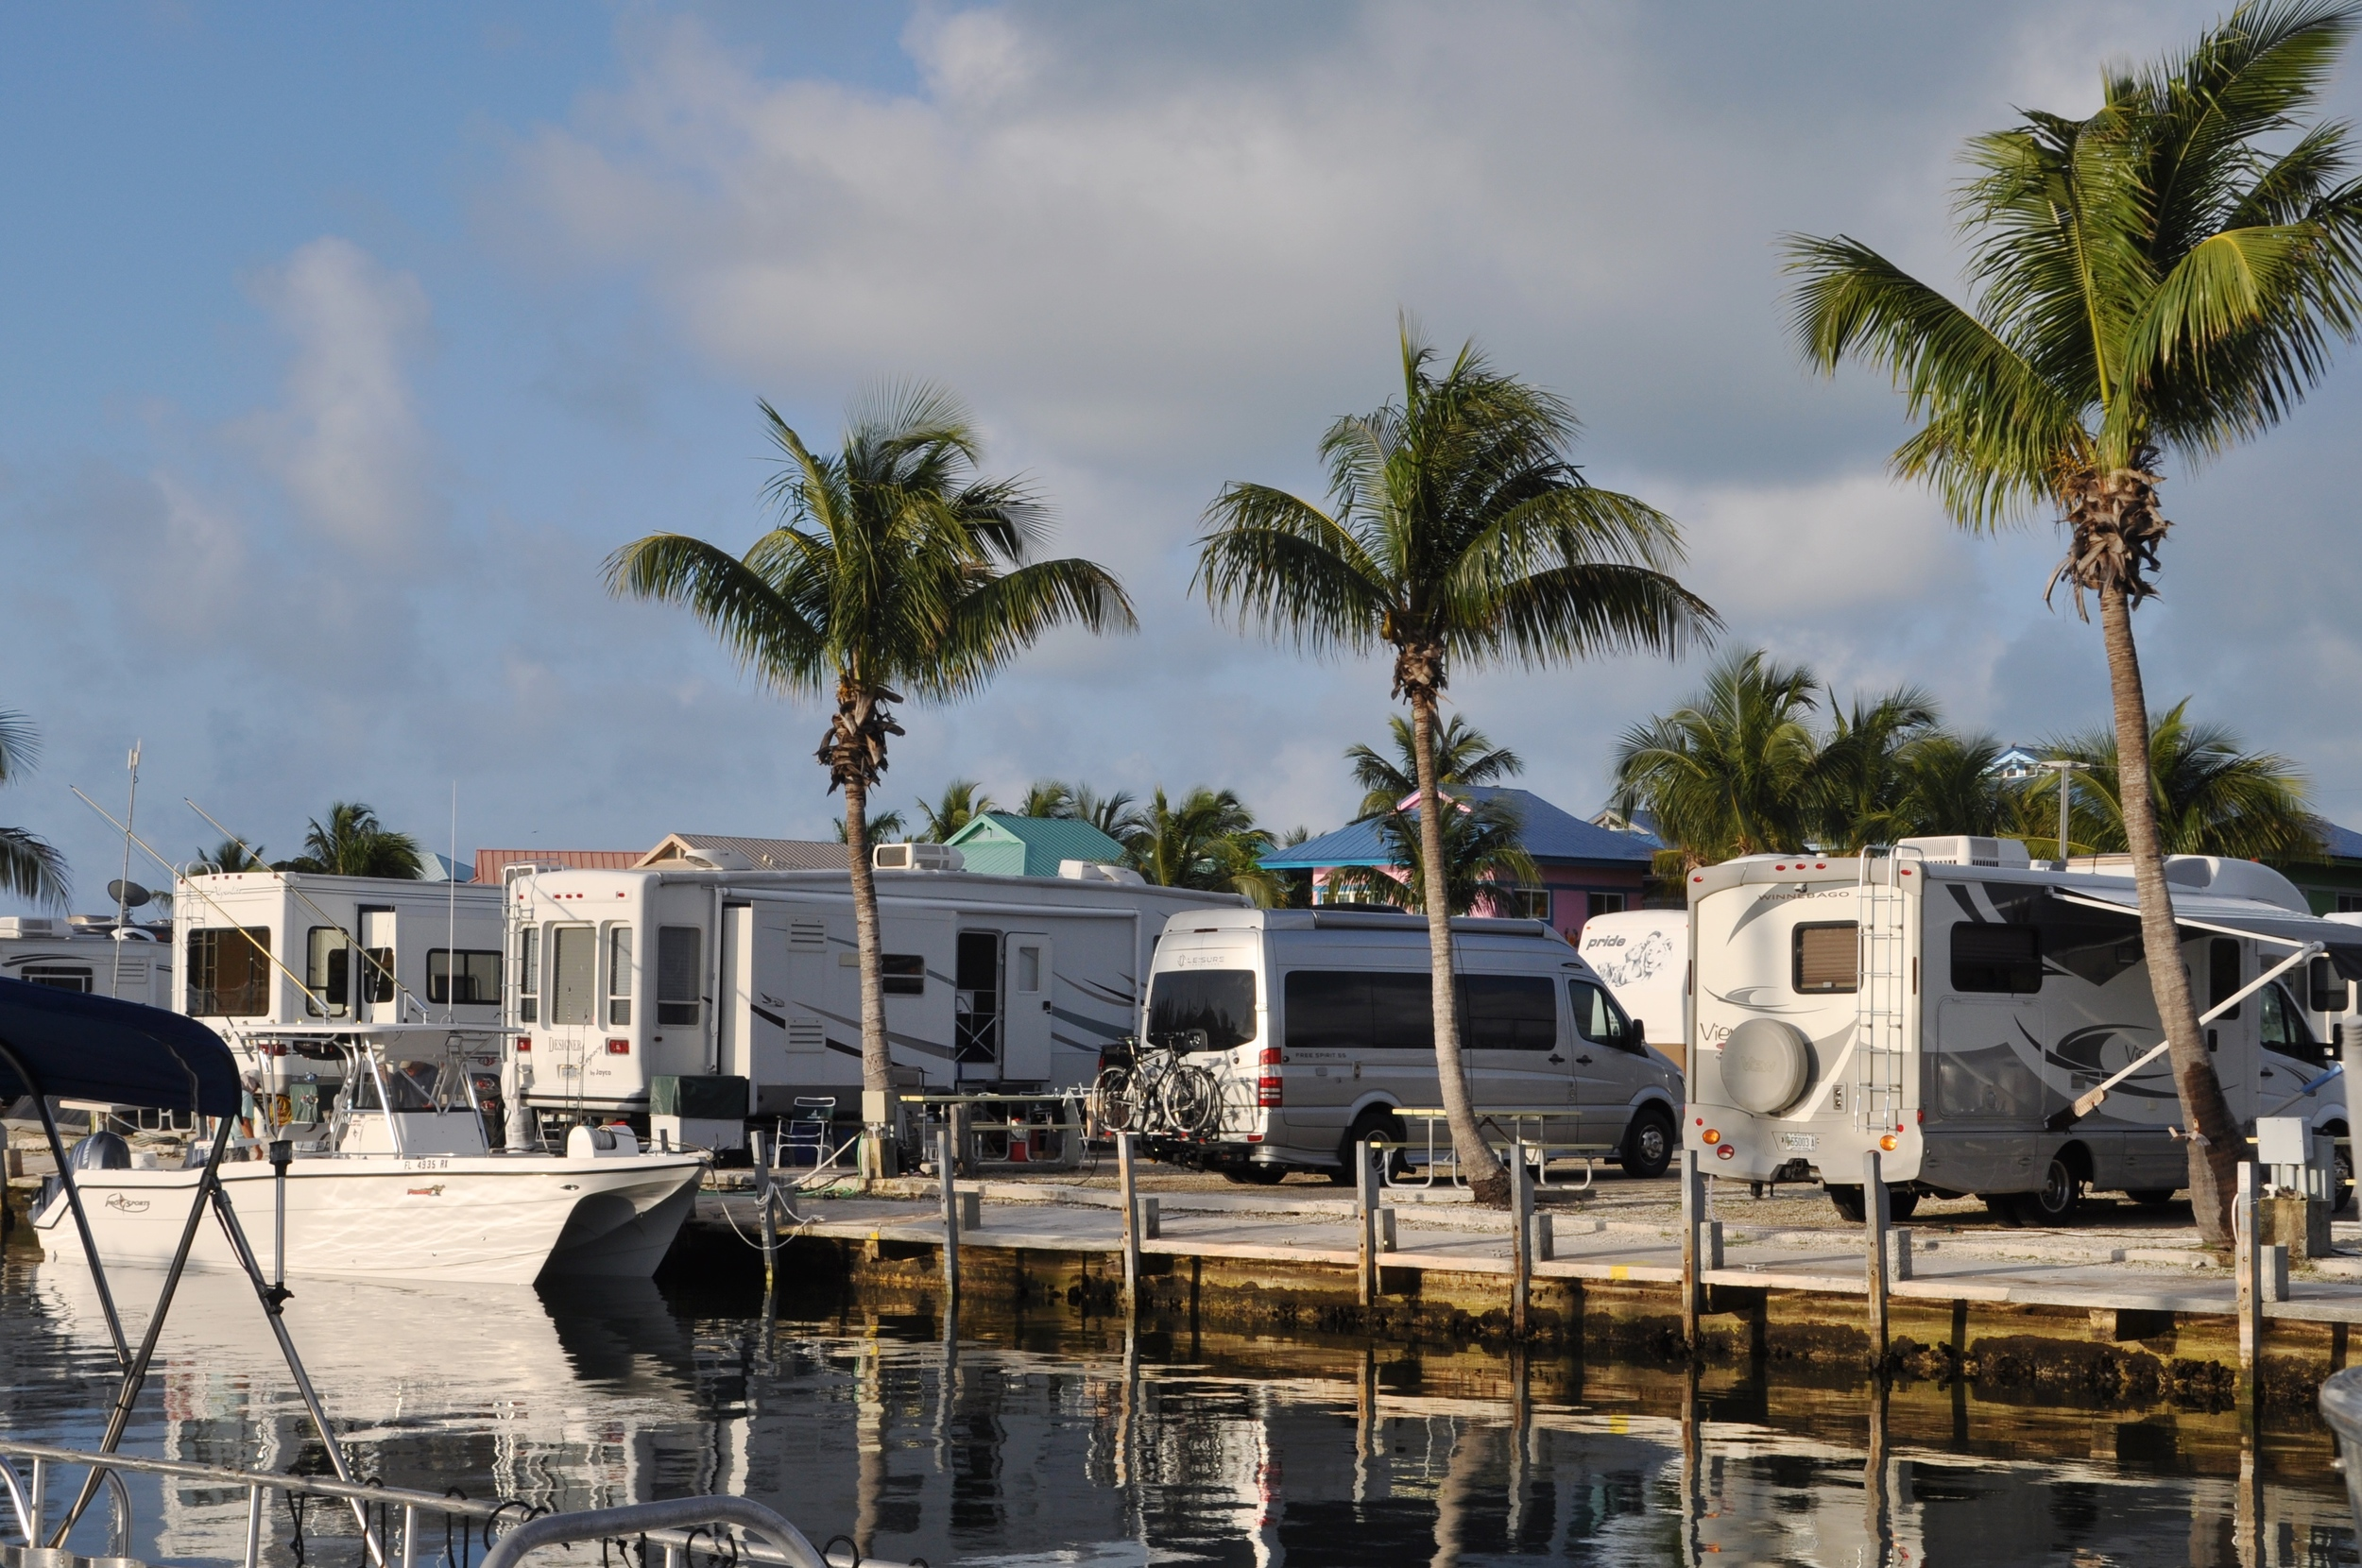 Our campsite at a harbor on Knights Key (that's us behind the middle palm tree)